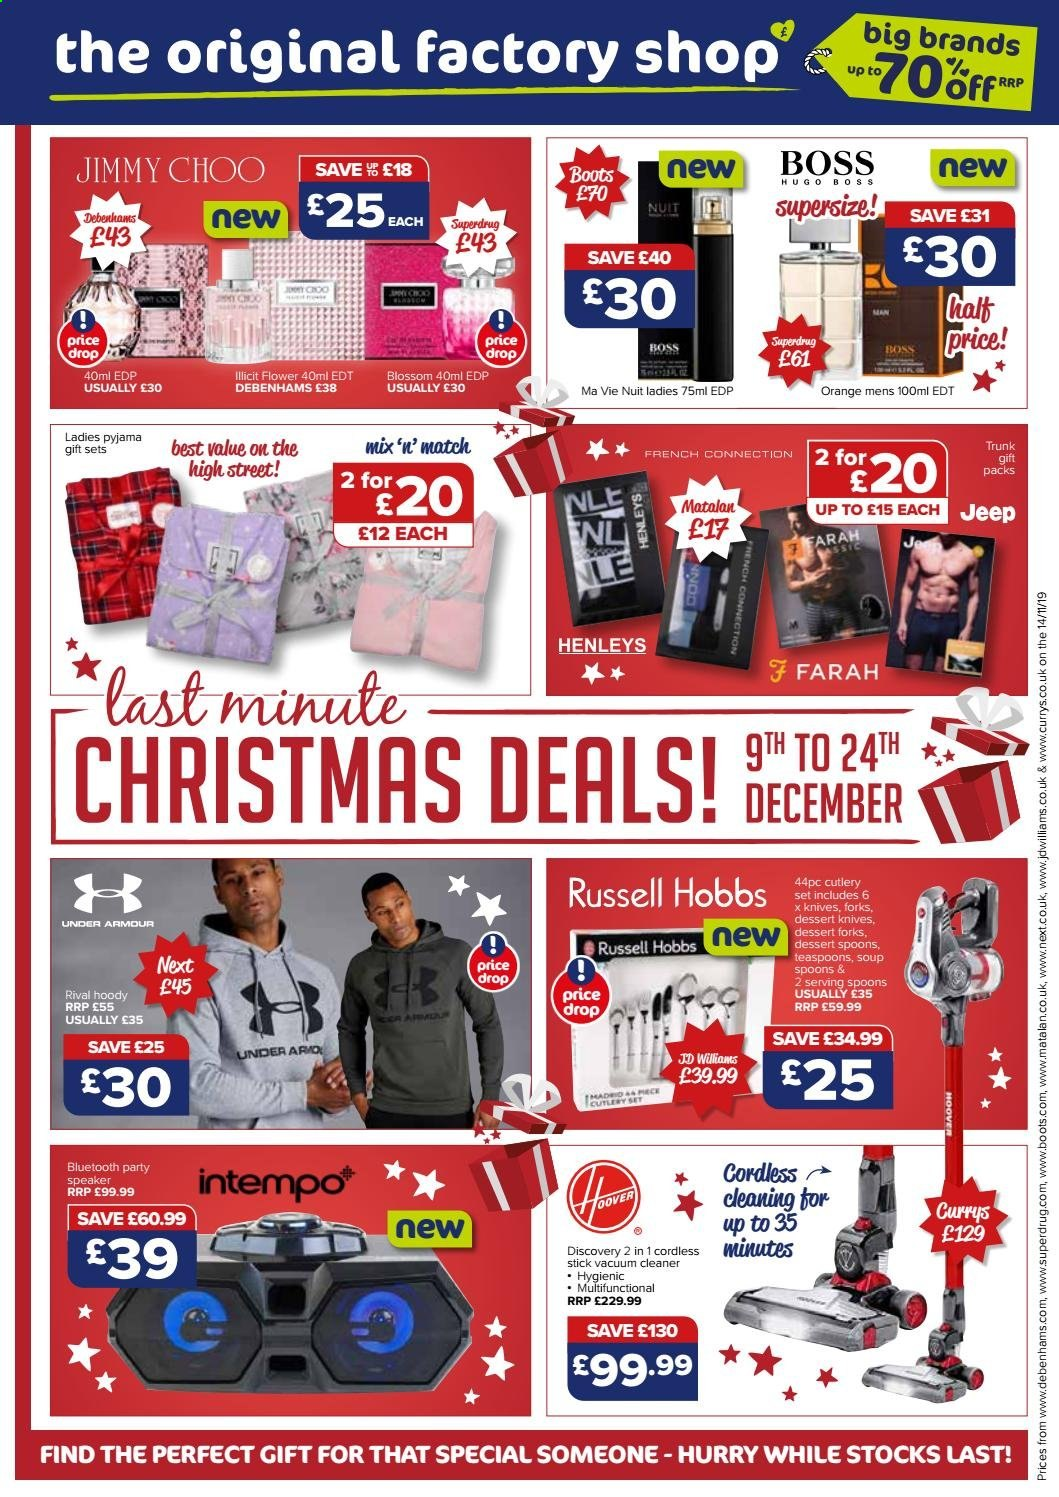 The Original Factory Shop offer  - 9.12.2019 - 24.12.2019 - Sales products - bluetooth, boots, eau de parfum, eau de toilette, knife, speaker, spoon, stick, under armour, vacuum, vacuum cleaner, henley, hugo boss, jimmy choo, dessert, soup, cutlery set, russell hobbs. Page 1.